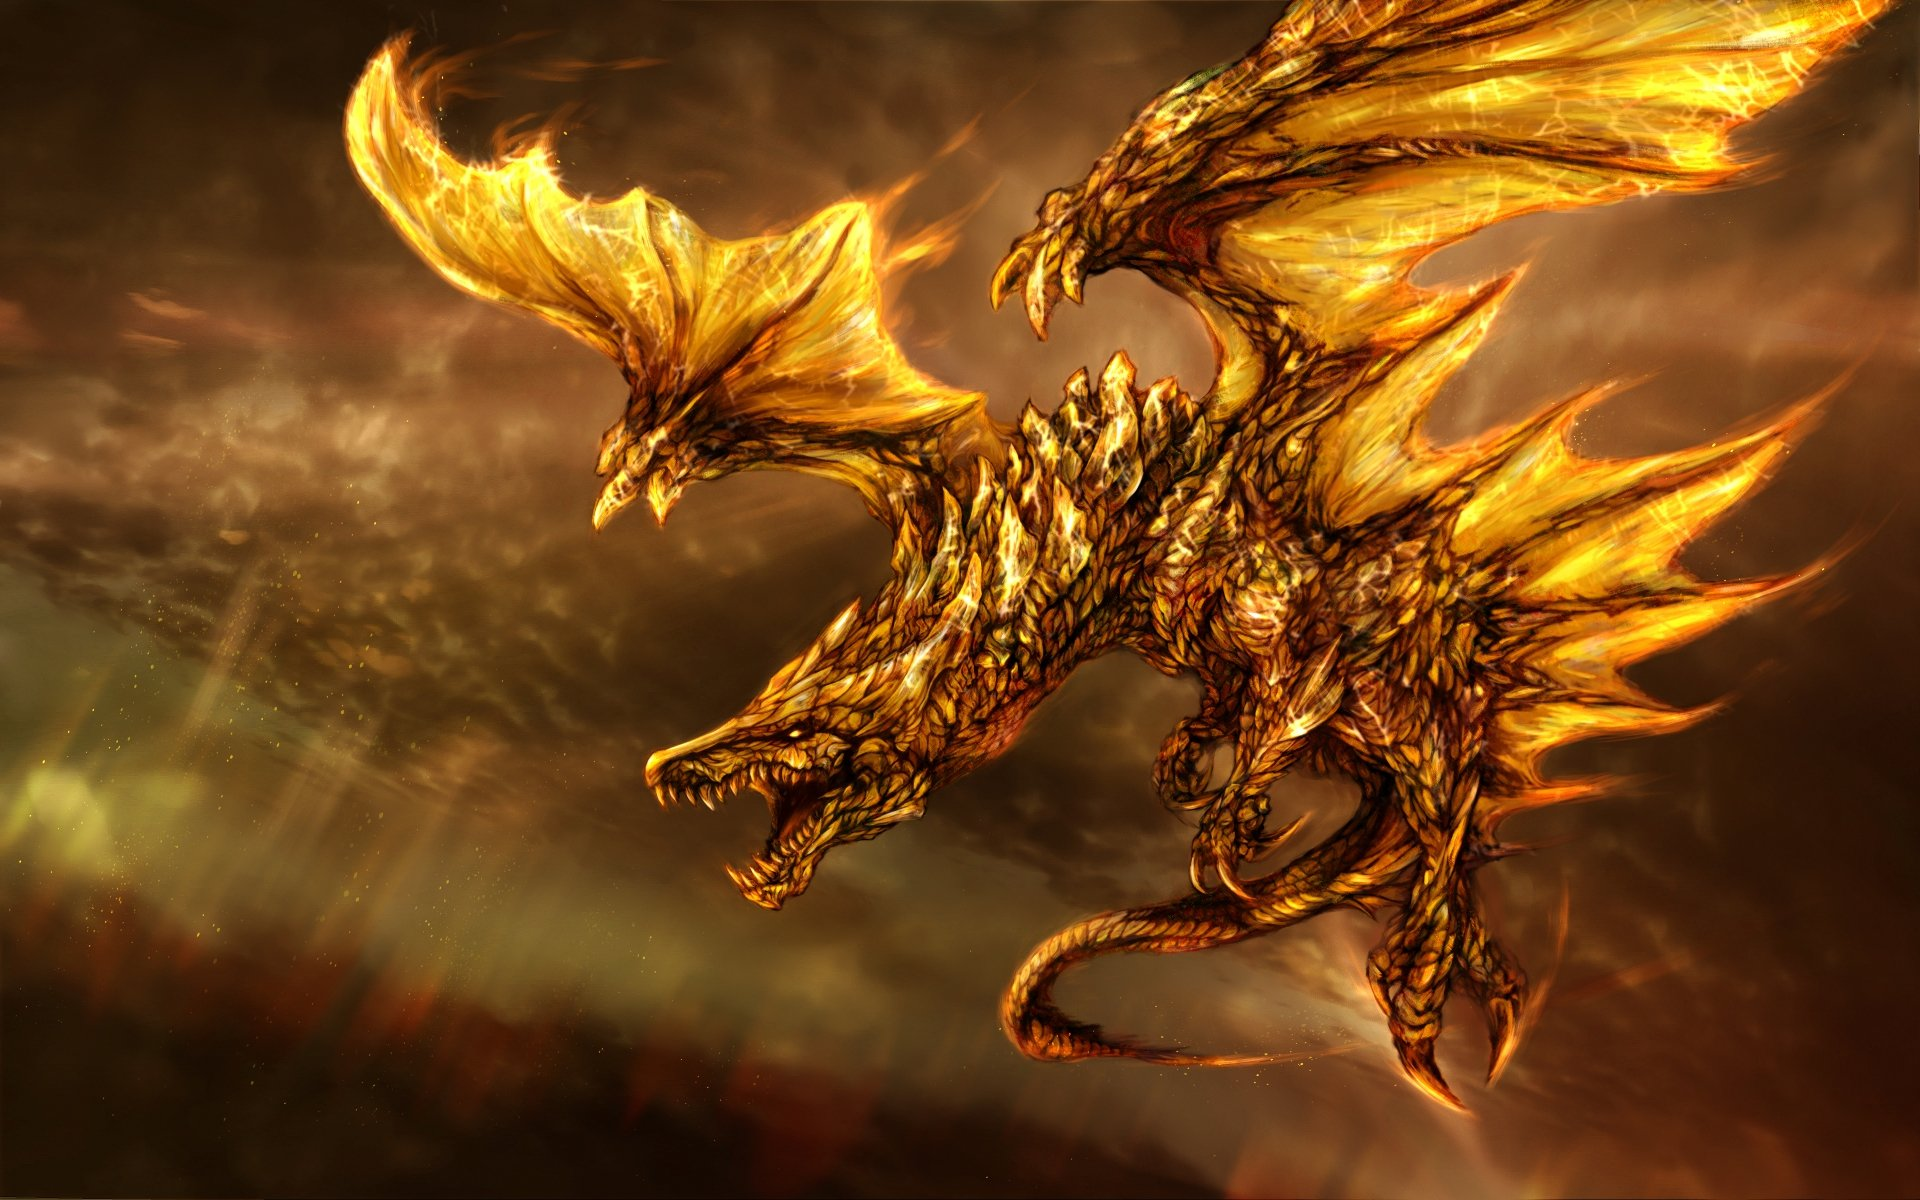 Wallpaper Of Dragons